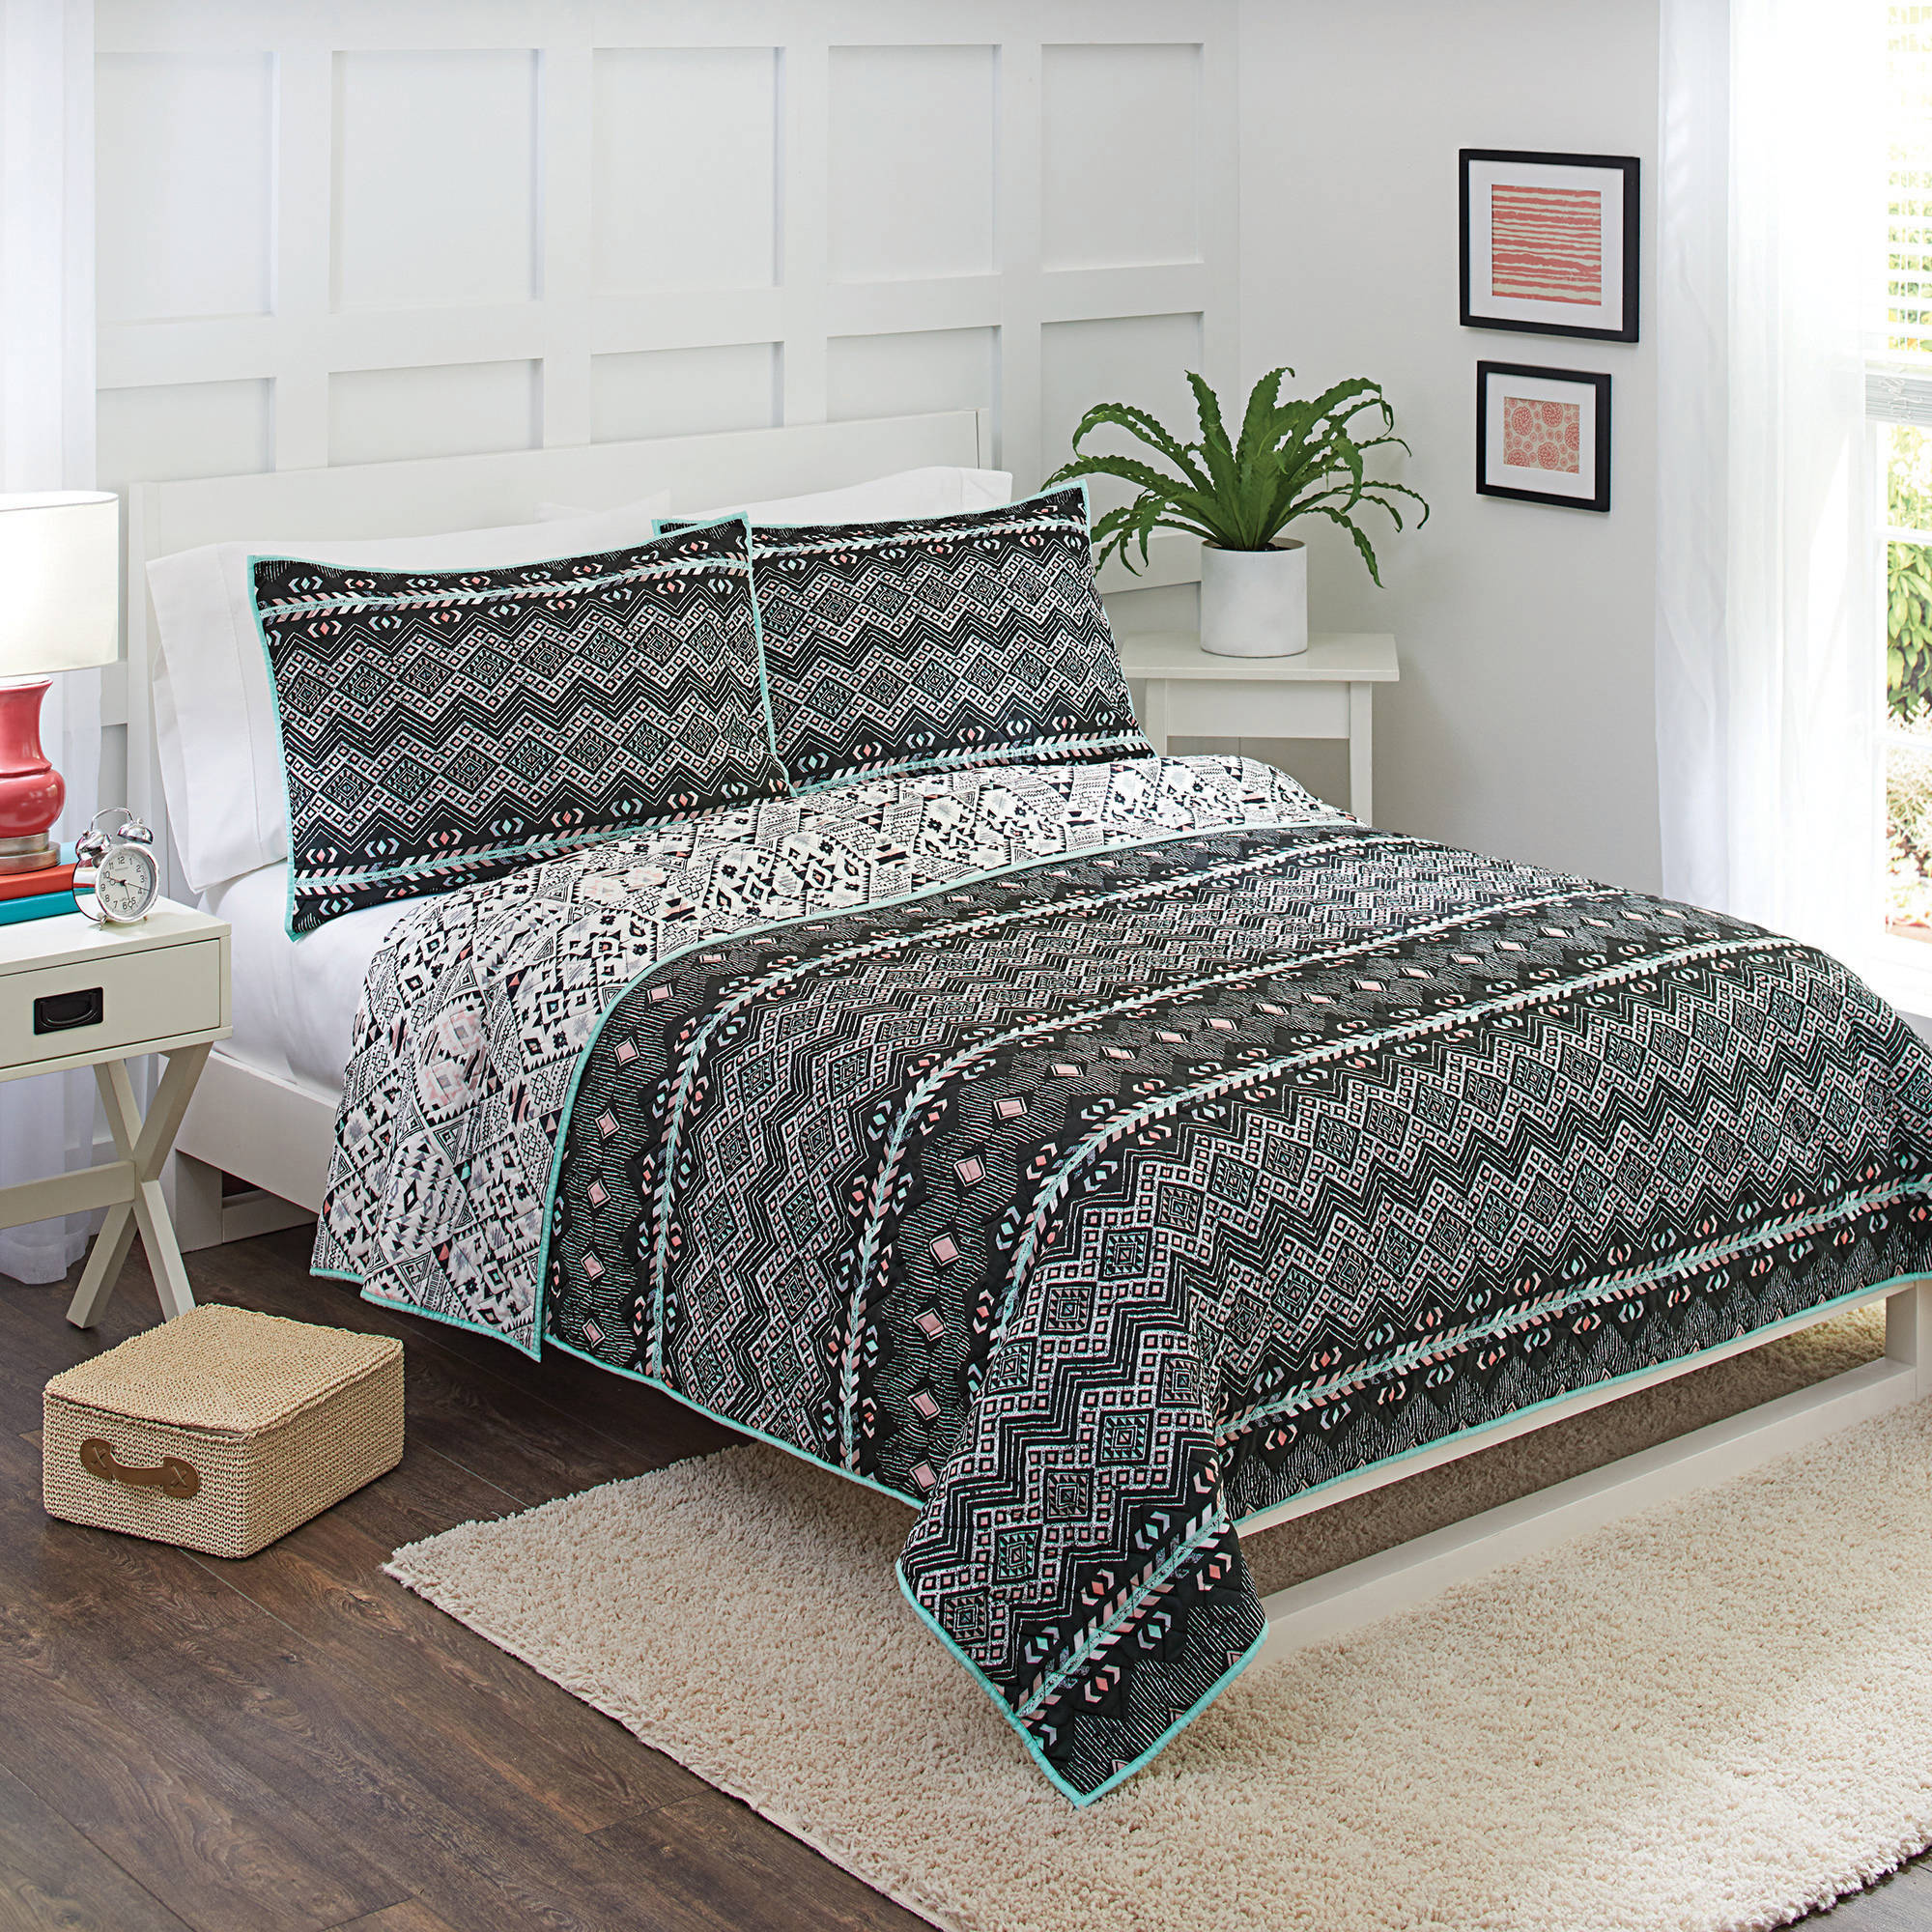 aztec pinterest quilt cover new pin covers set